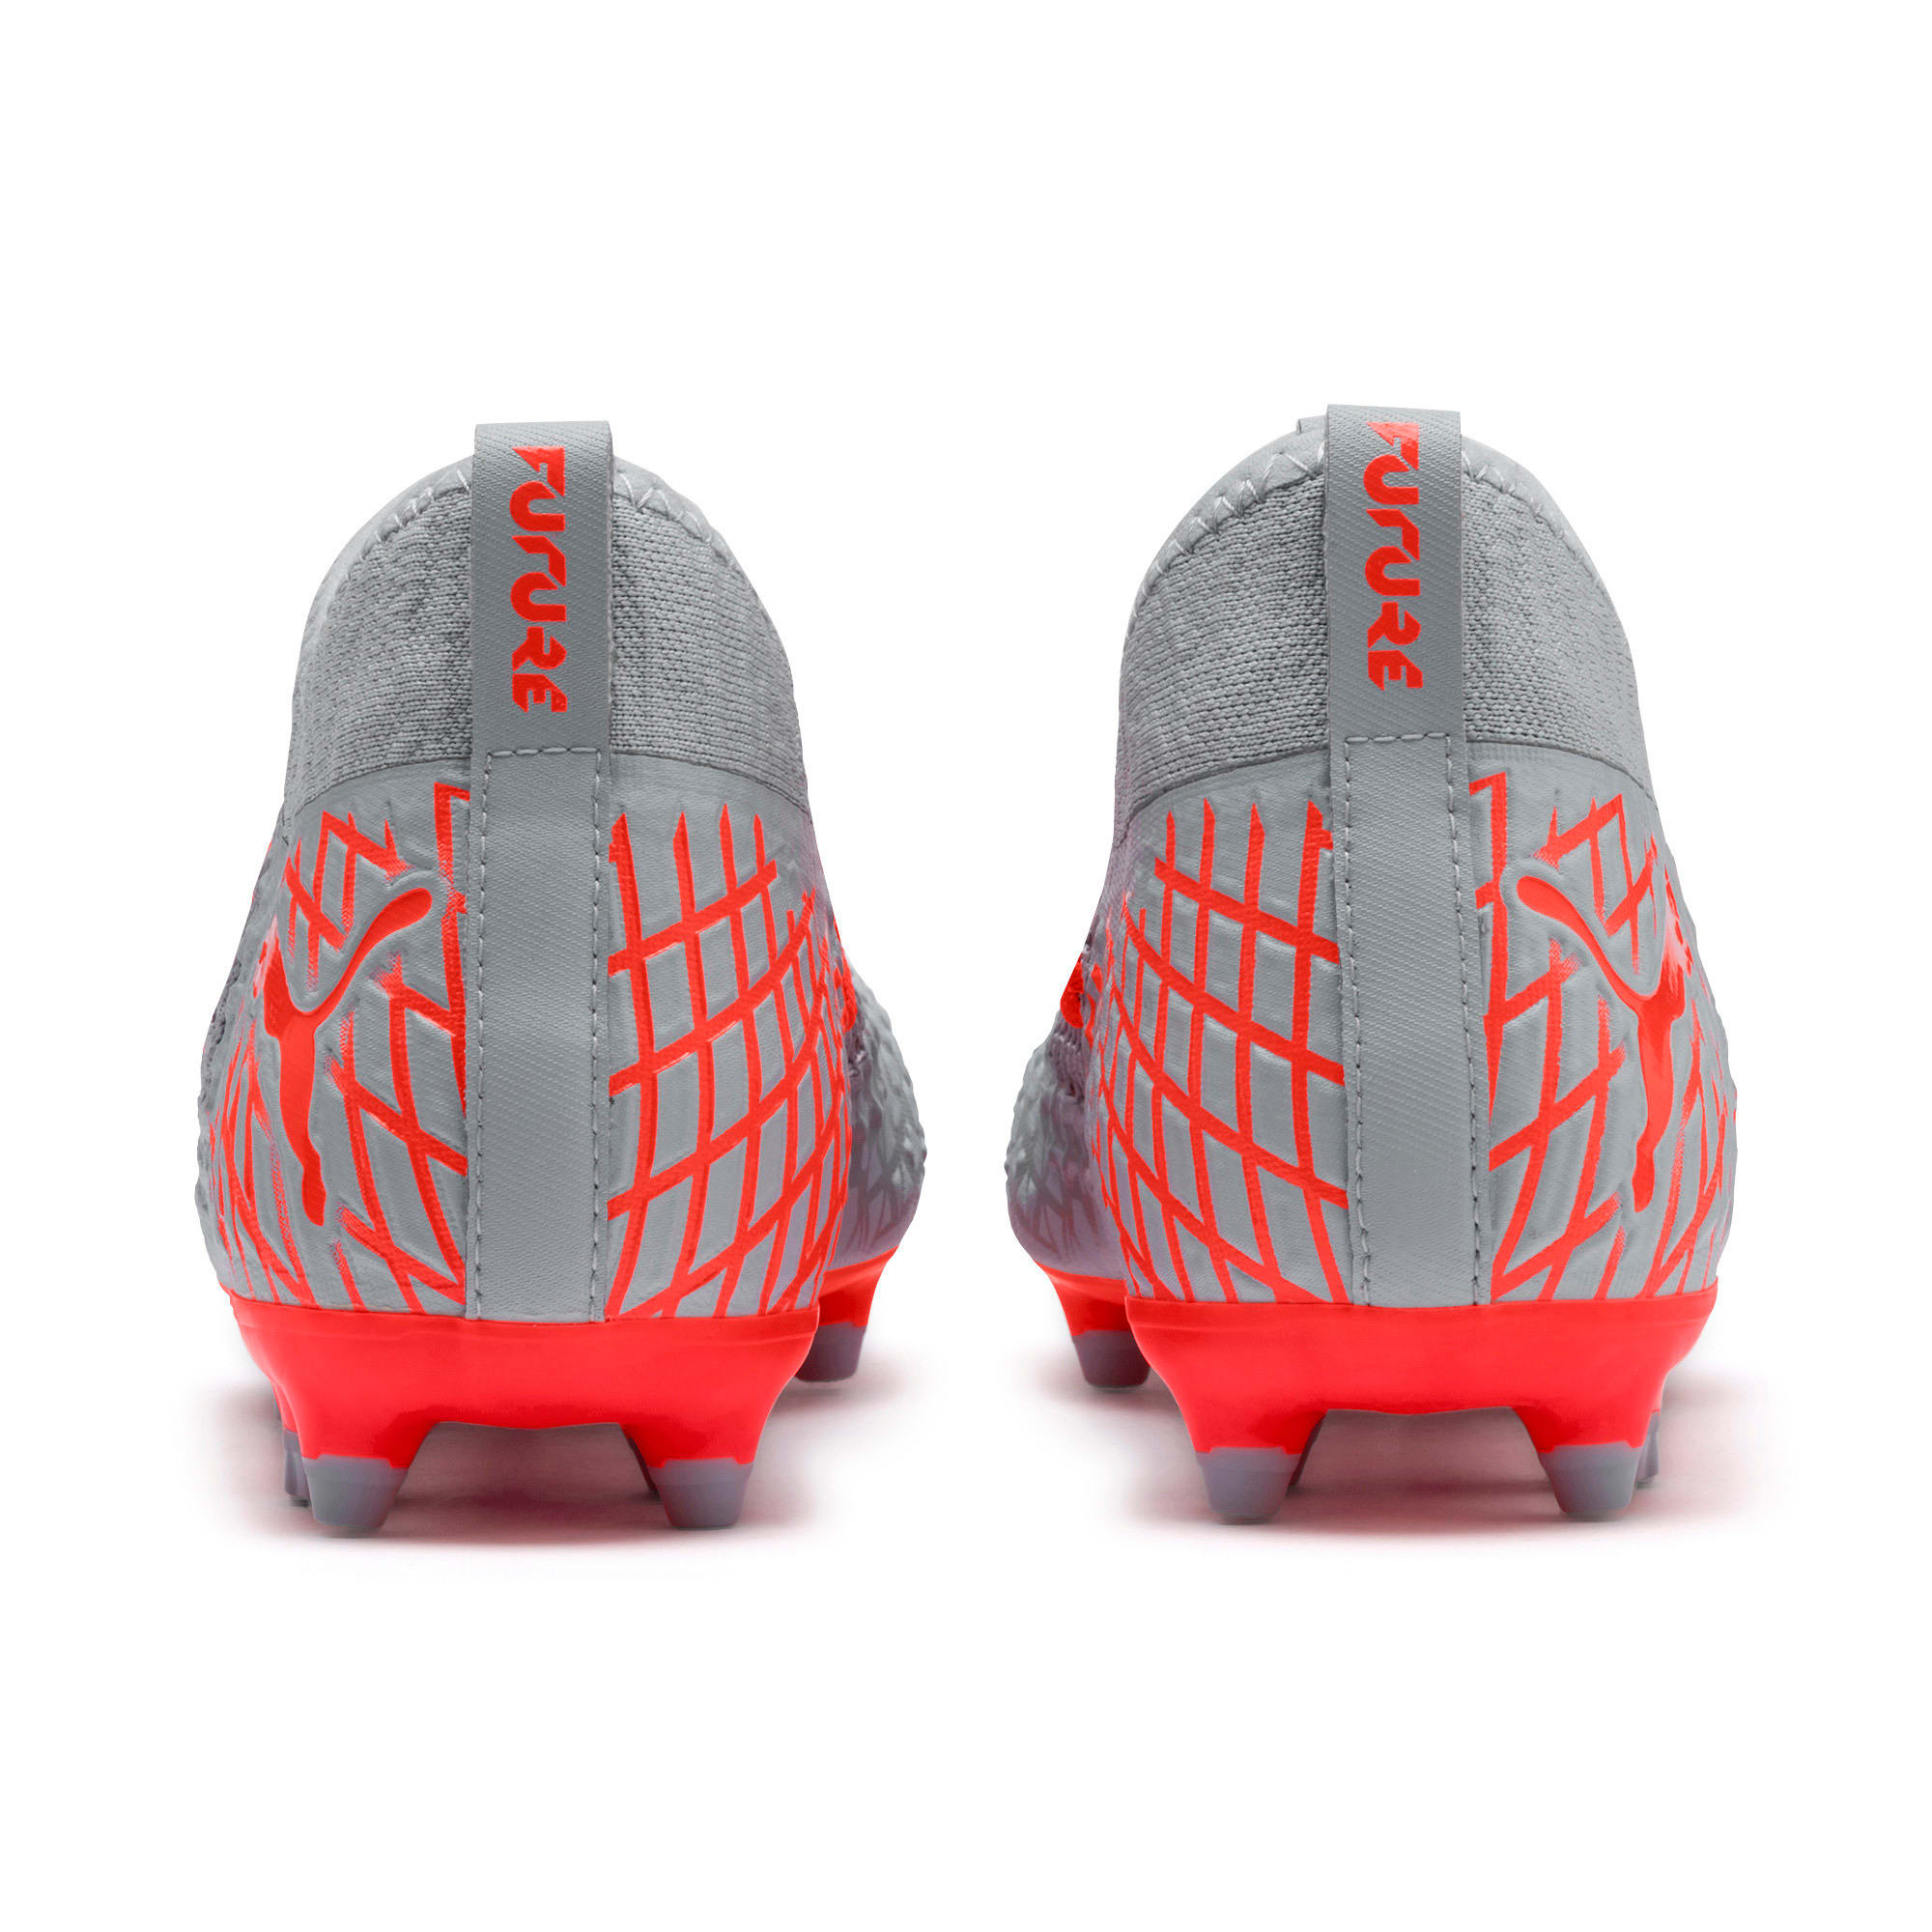 Thumbnail 4 of FUTURE 4.3 NETFIT FG/AG Men's Football Boots, Glacial Blue-Nrgy Red, medium-IND